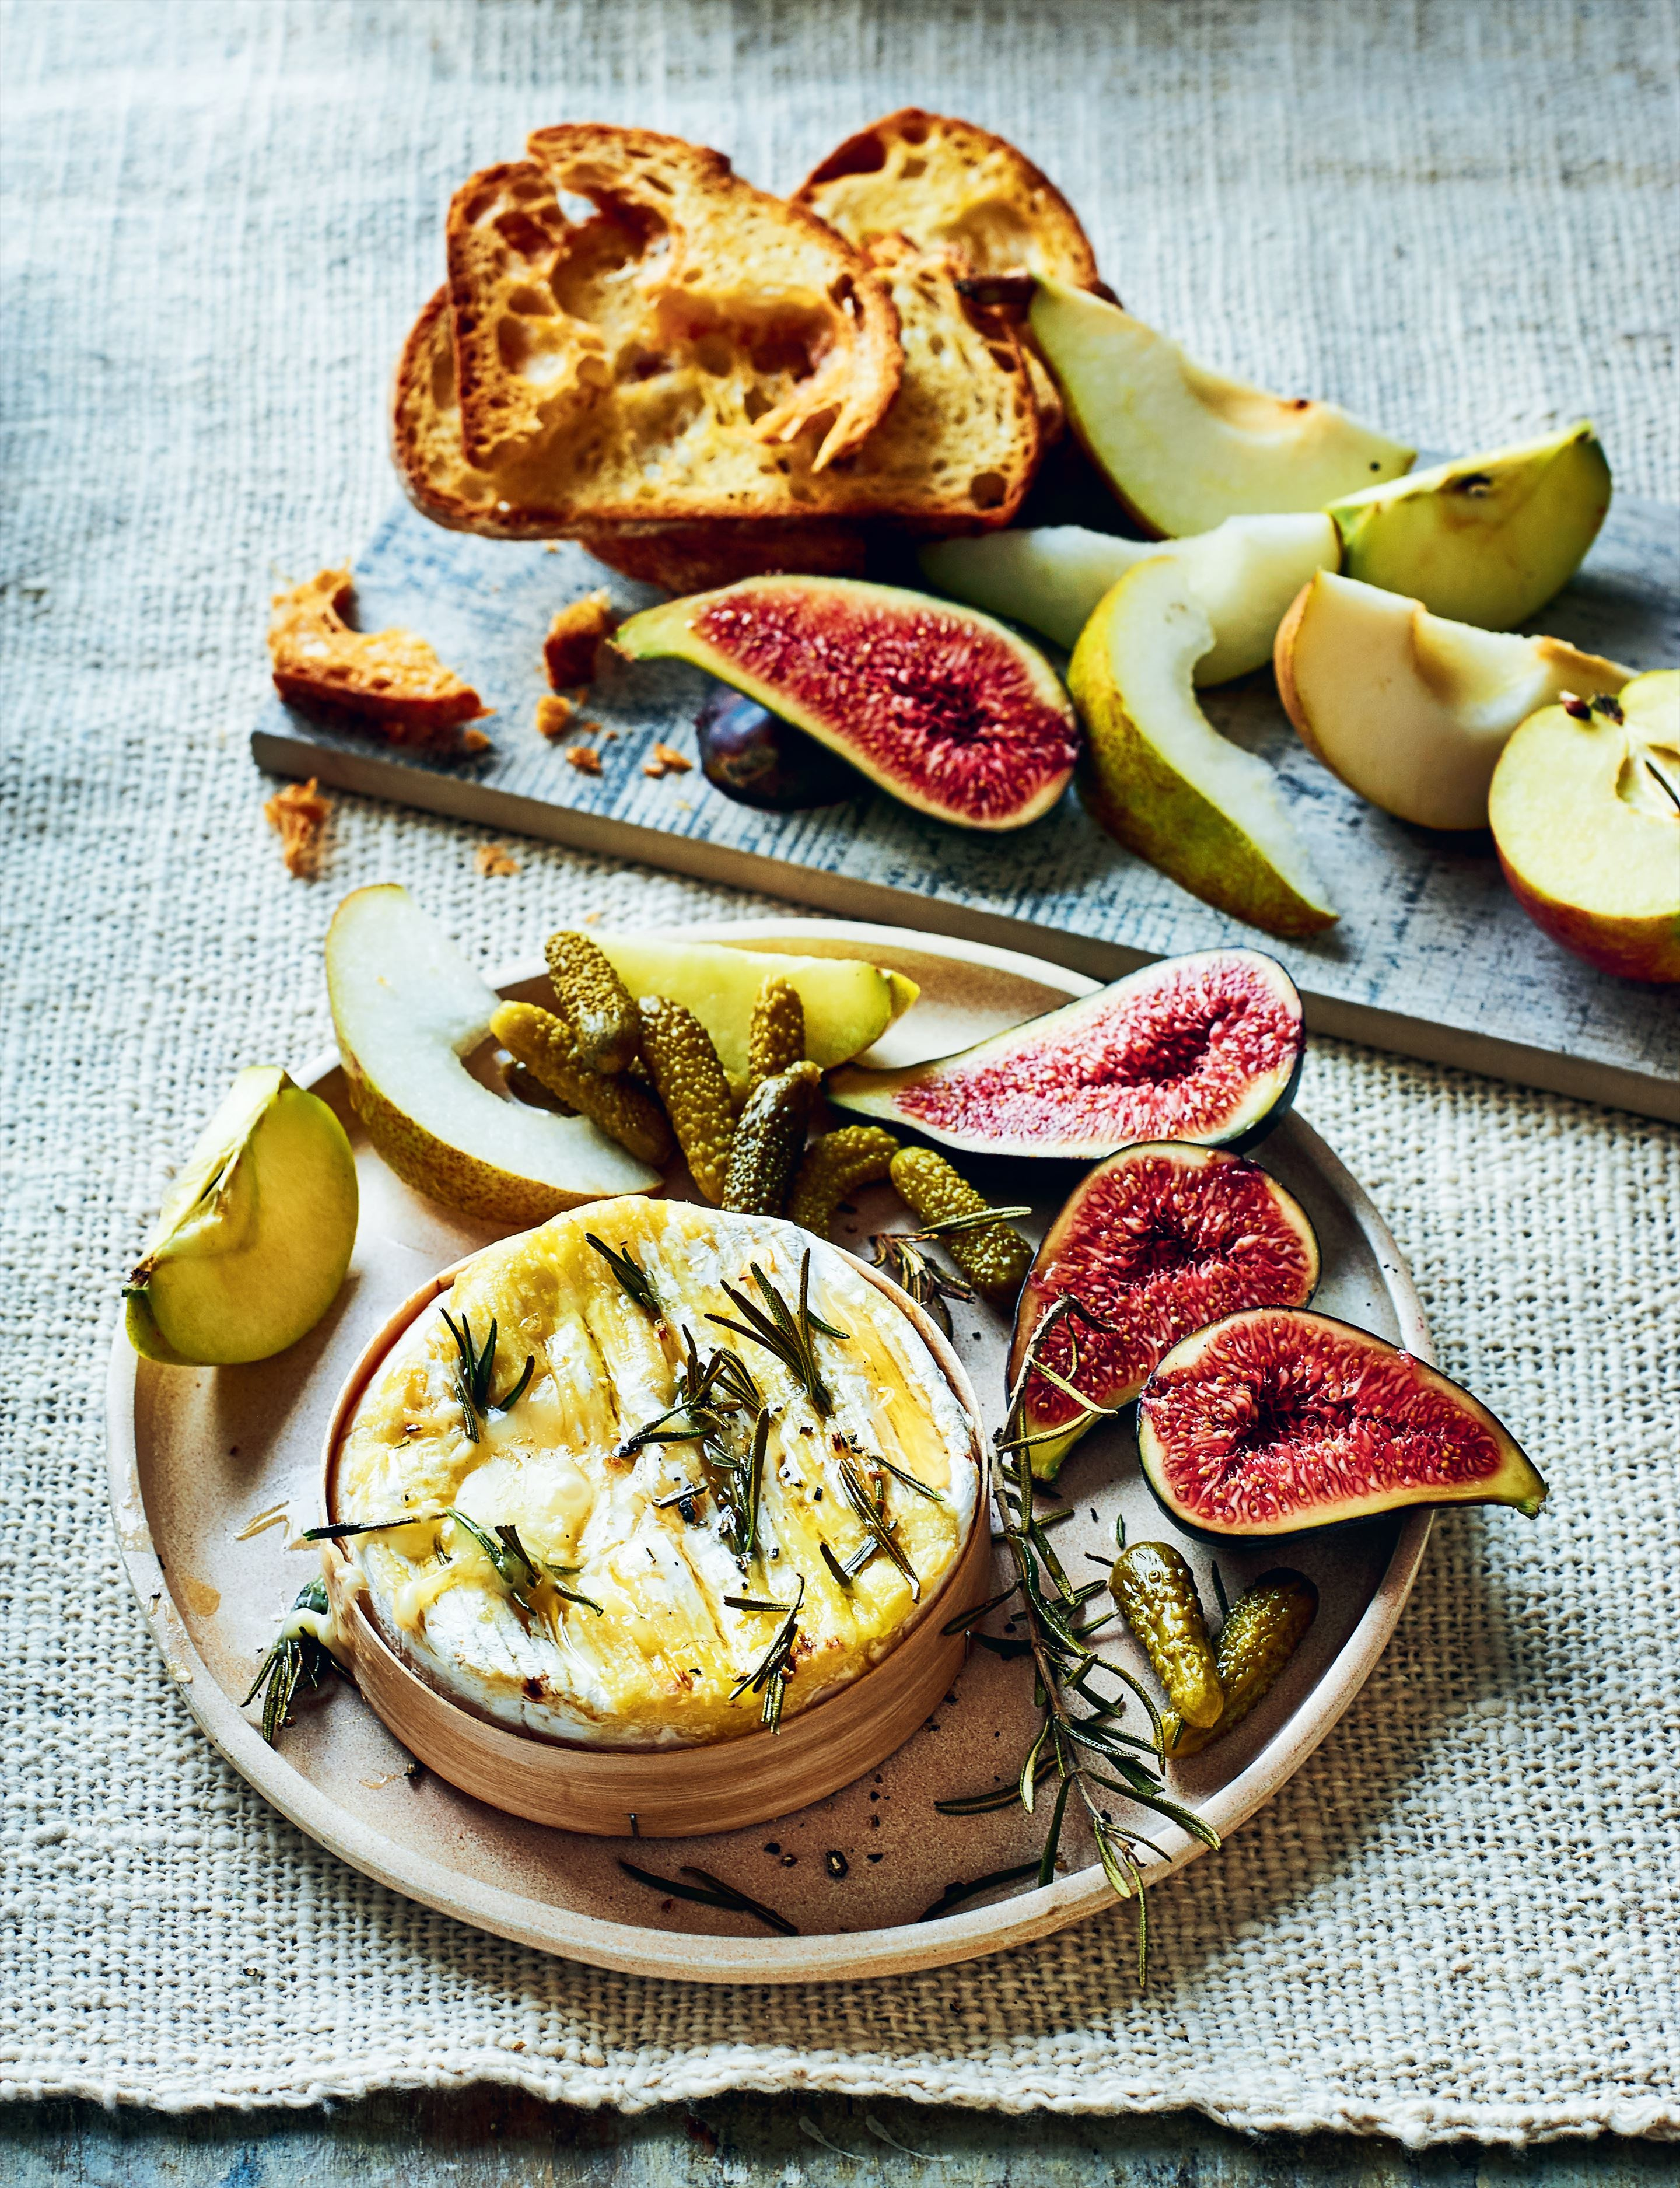 Baked whole camembert with rosemary, honey and garlic toast